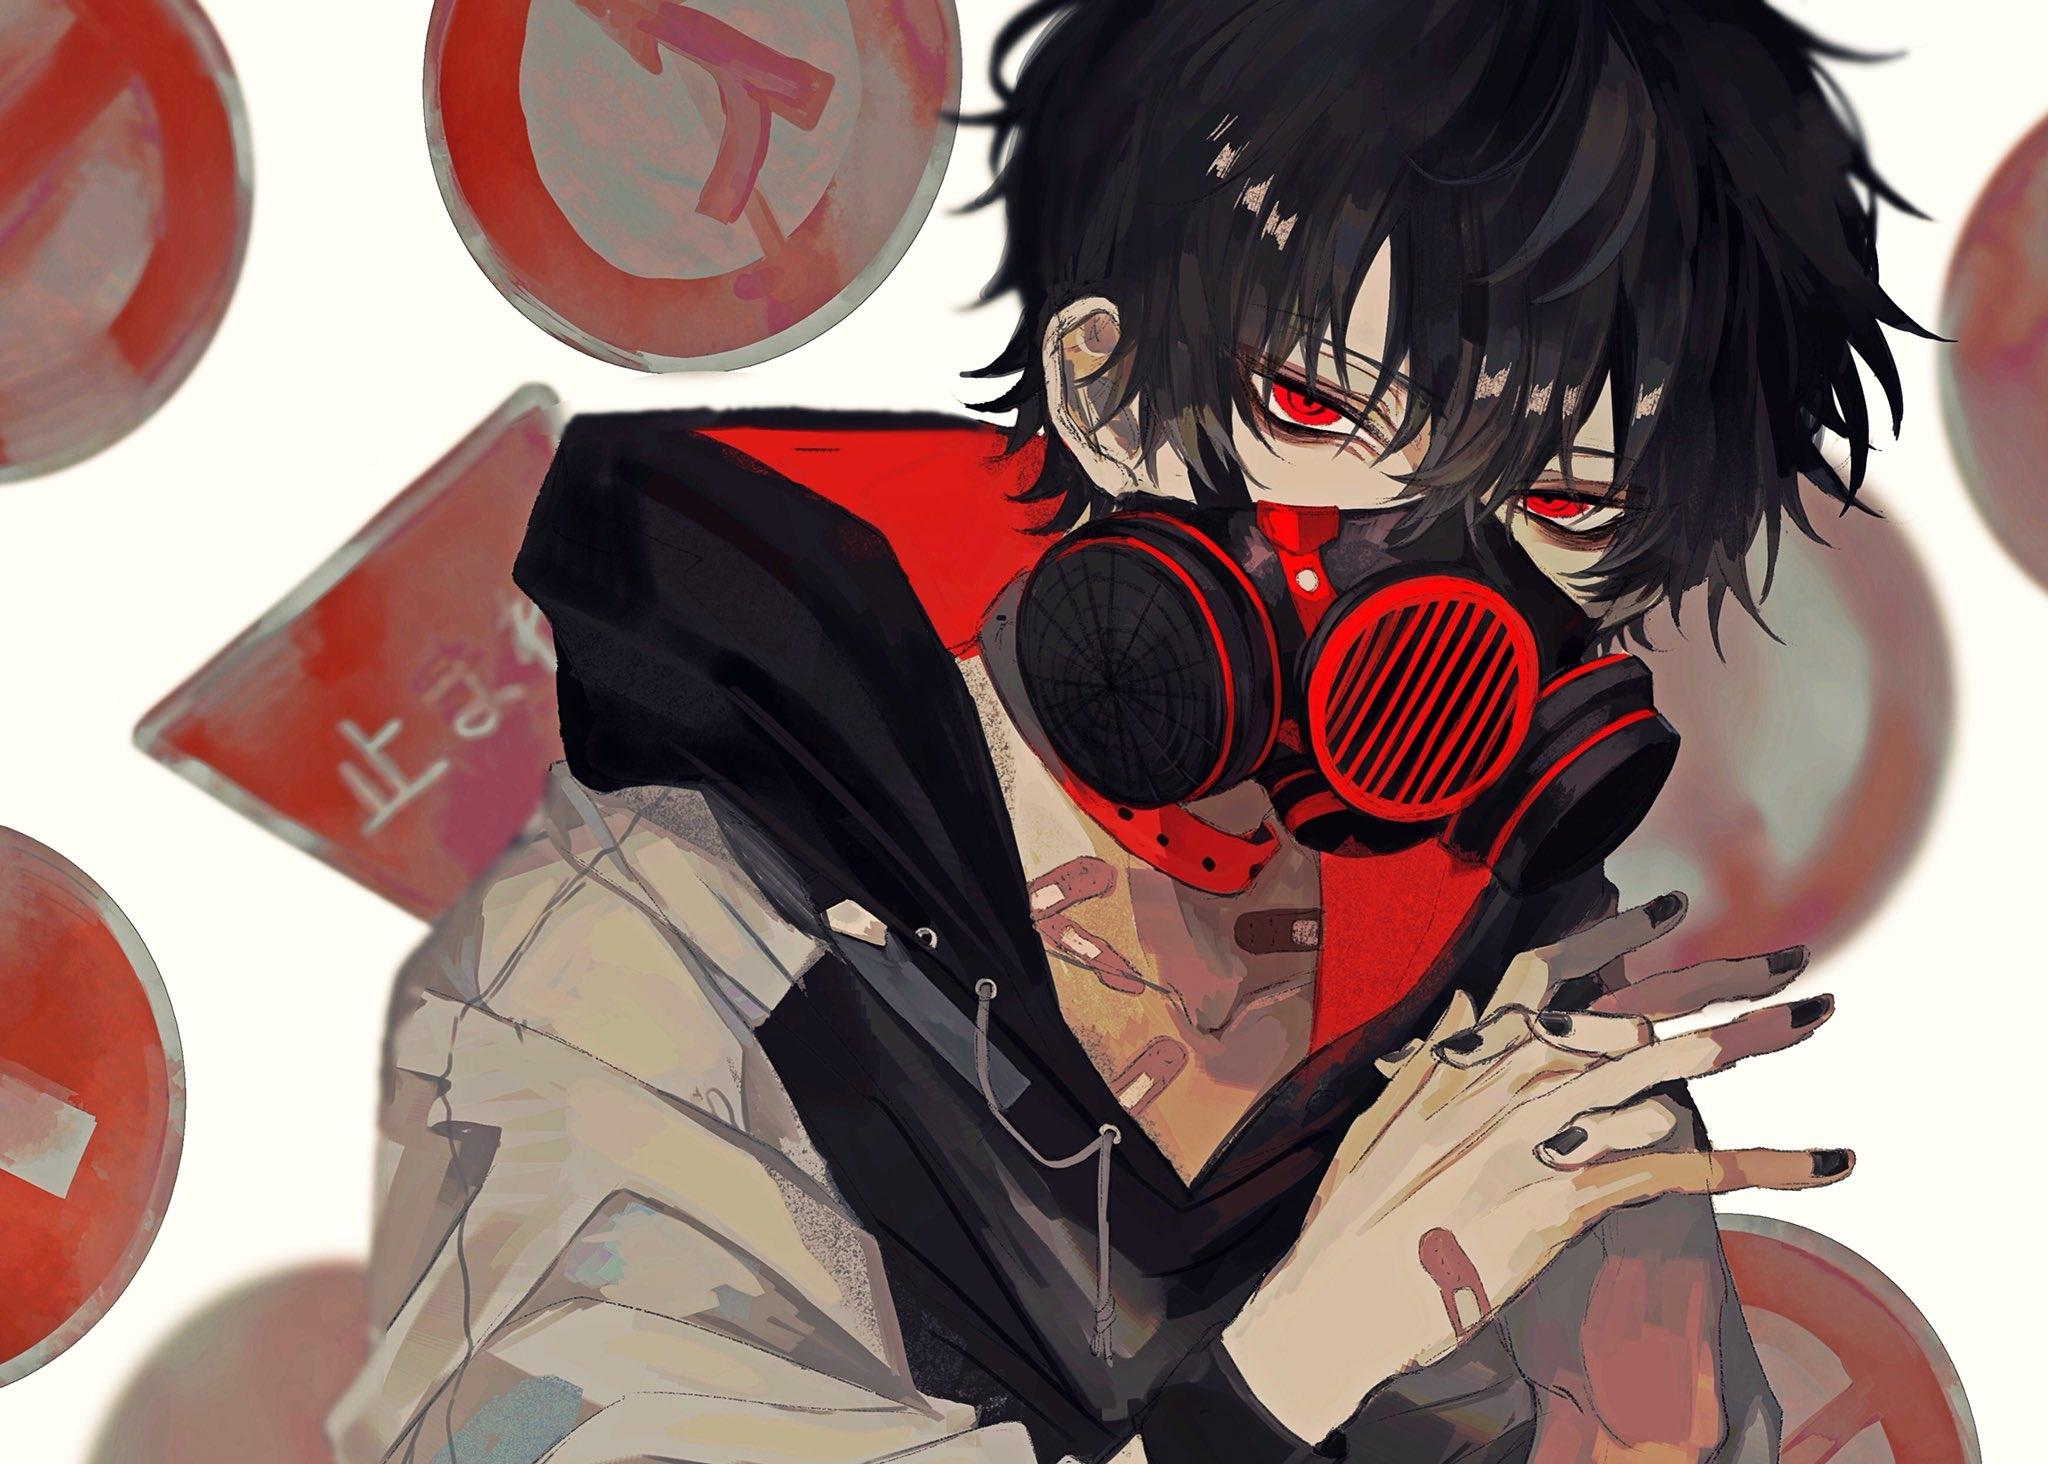 Cool Anime Boys With Black Hair And Eyes Wallpapers Wallpaper Cave